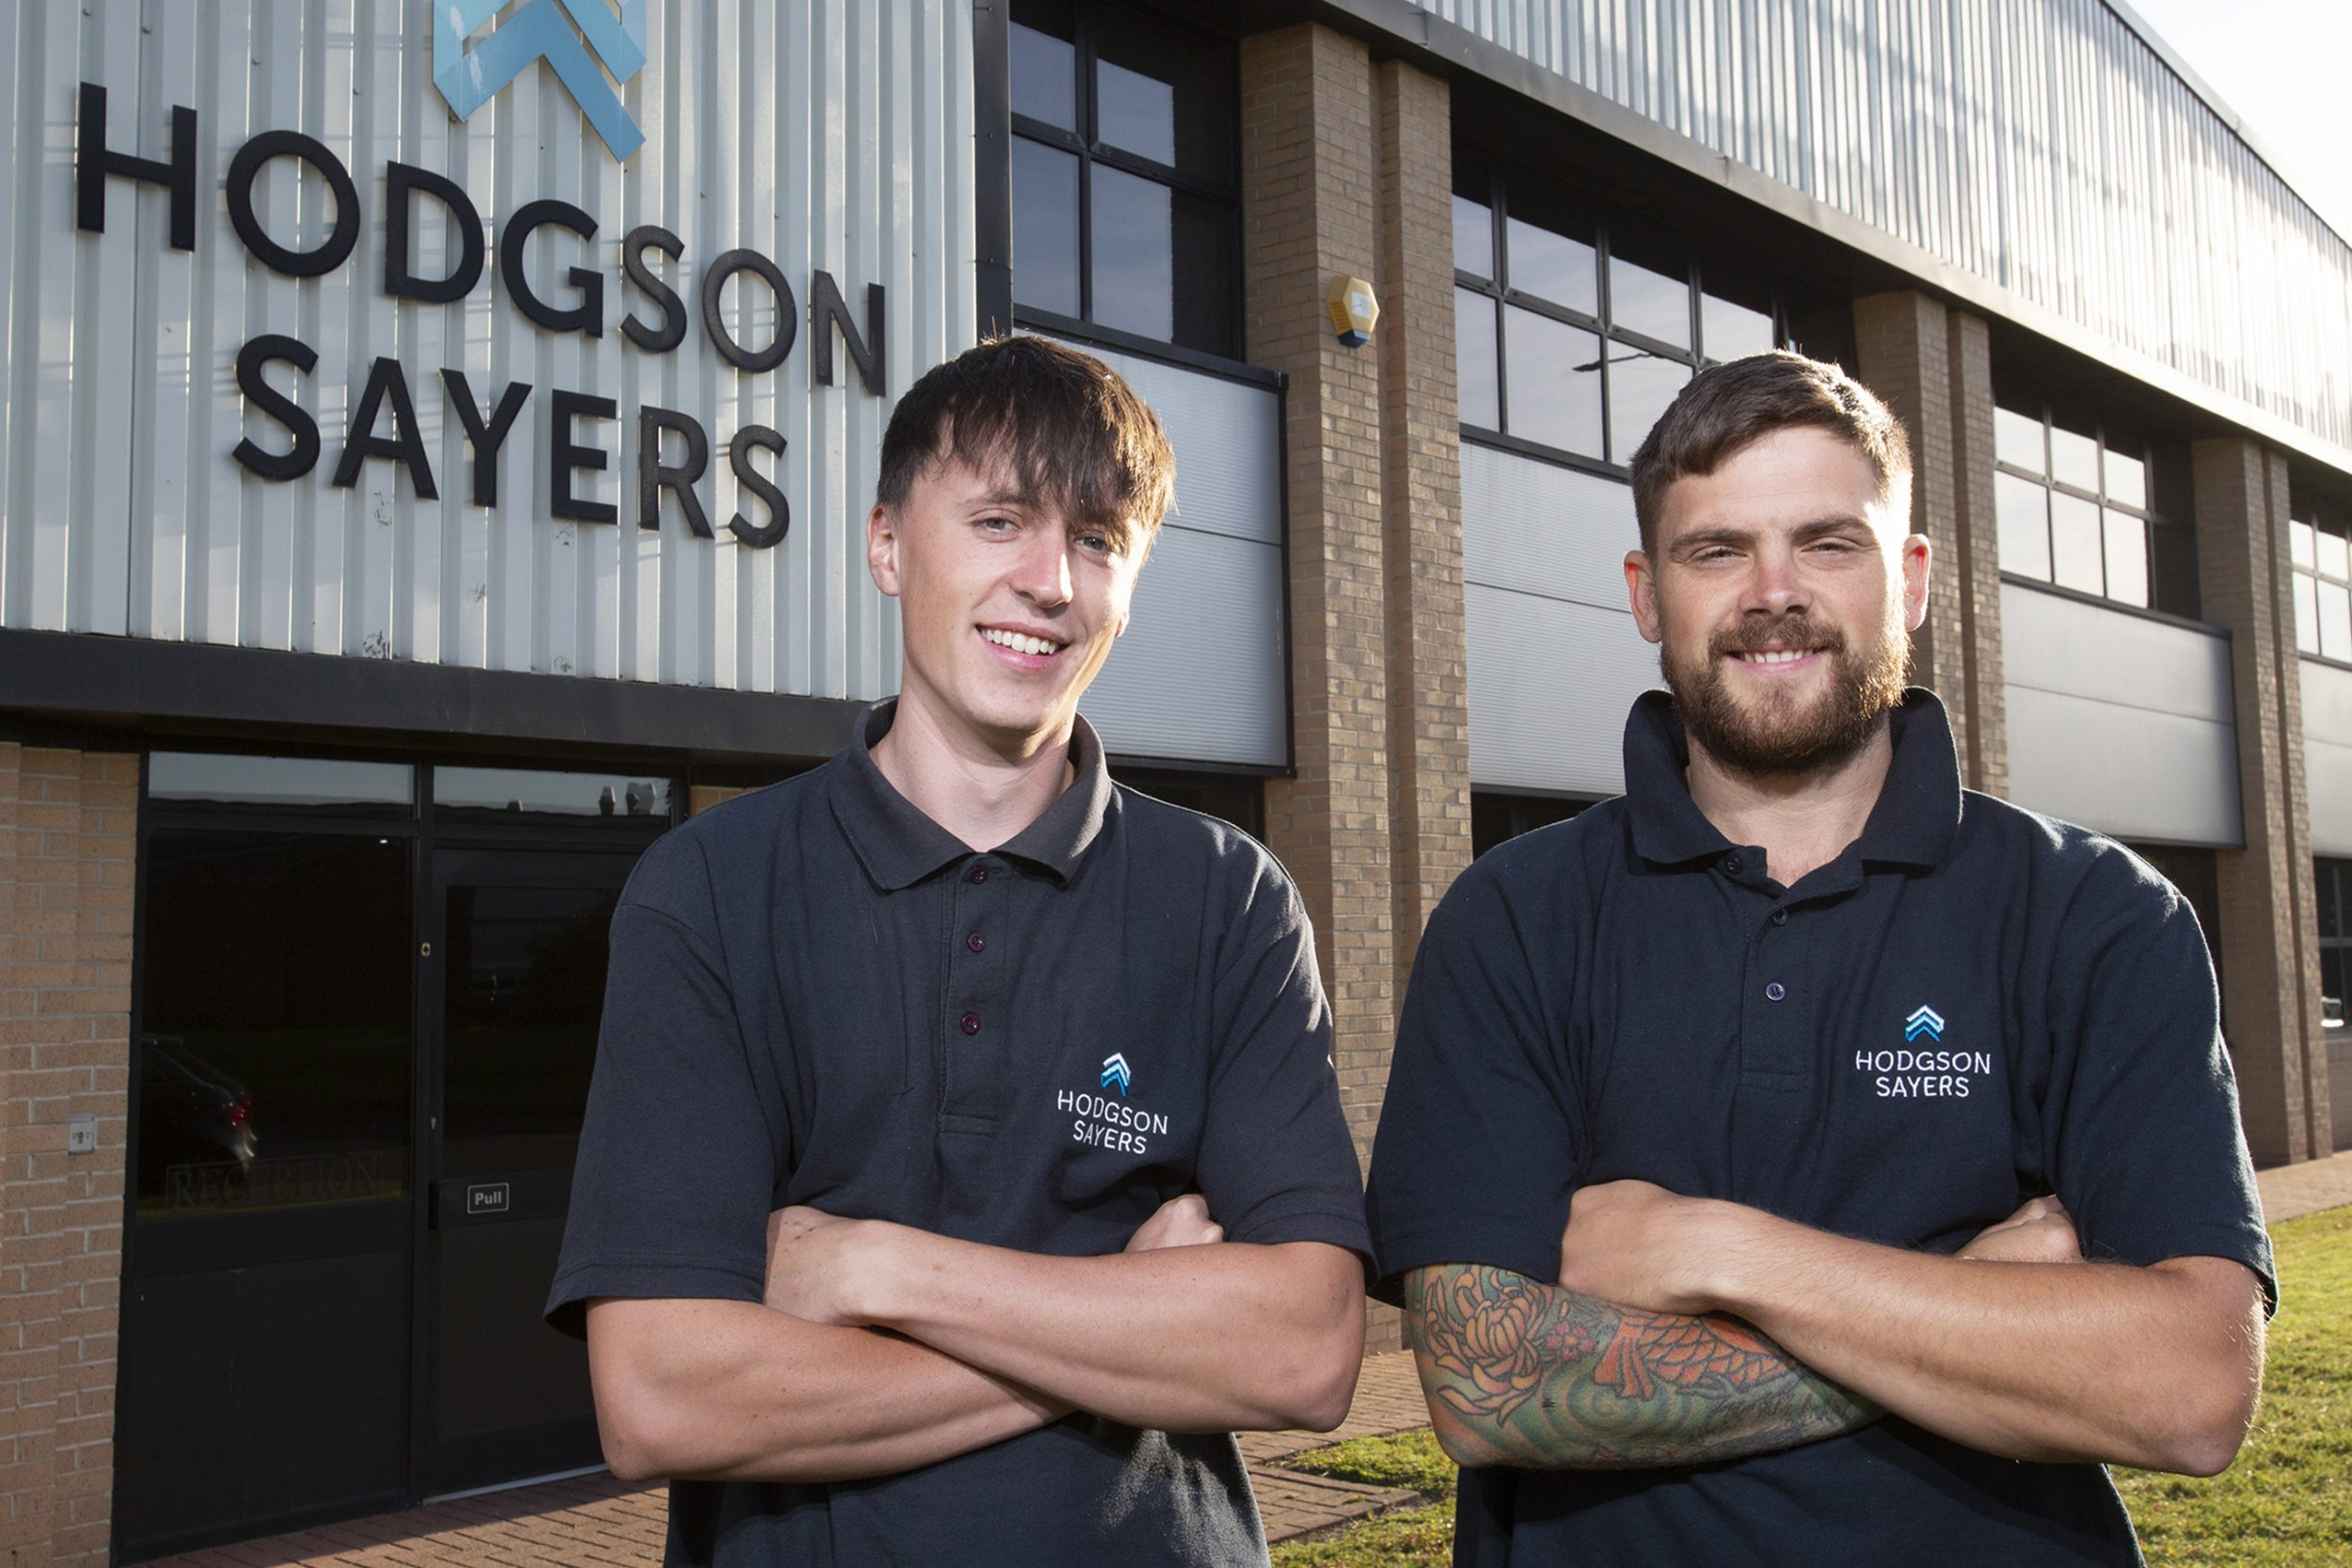 Newcastle Apprentices Reach Finals Of Prestigious National